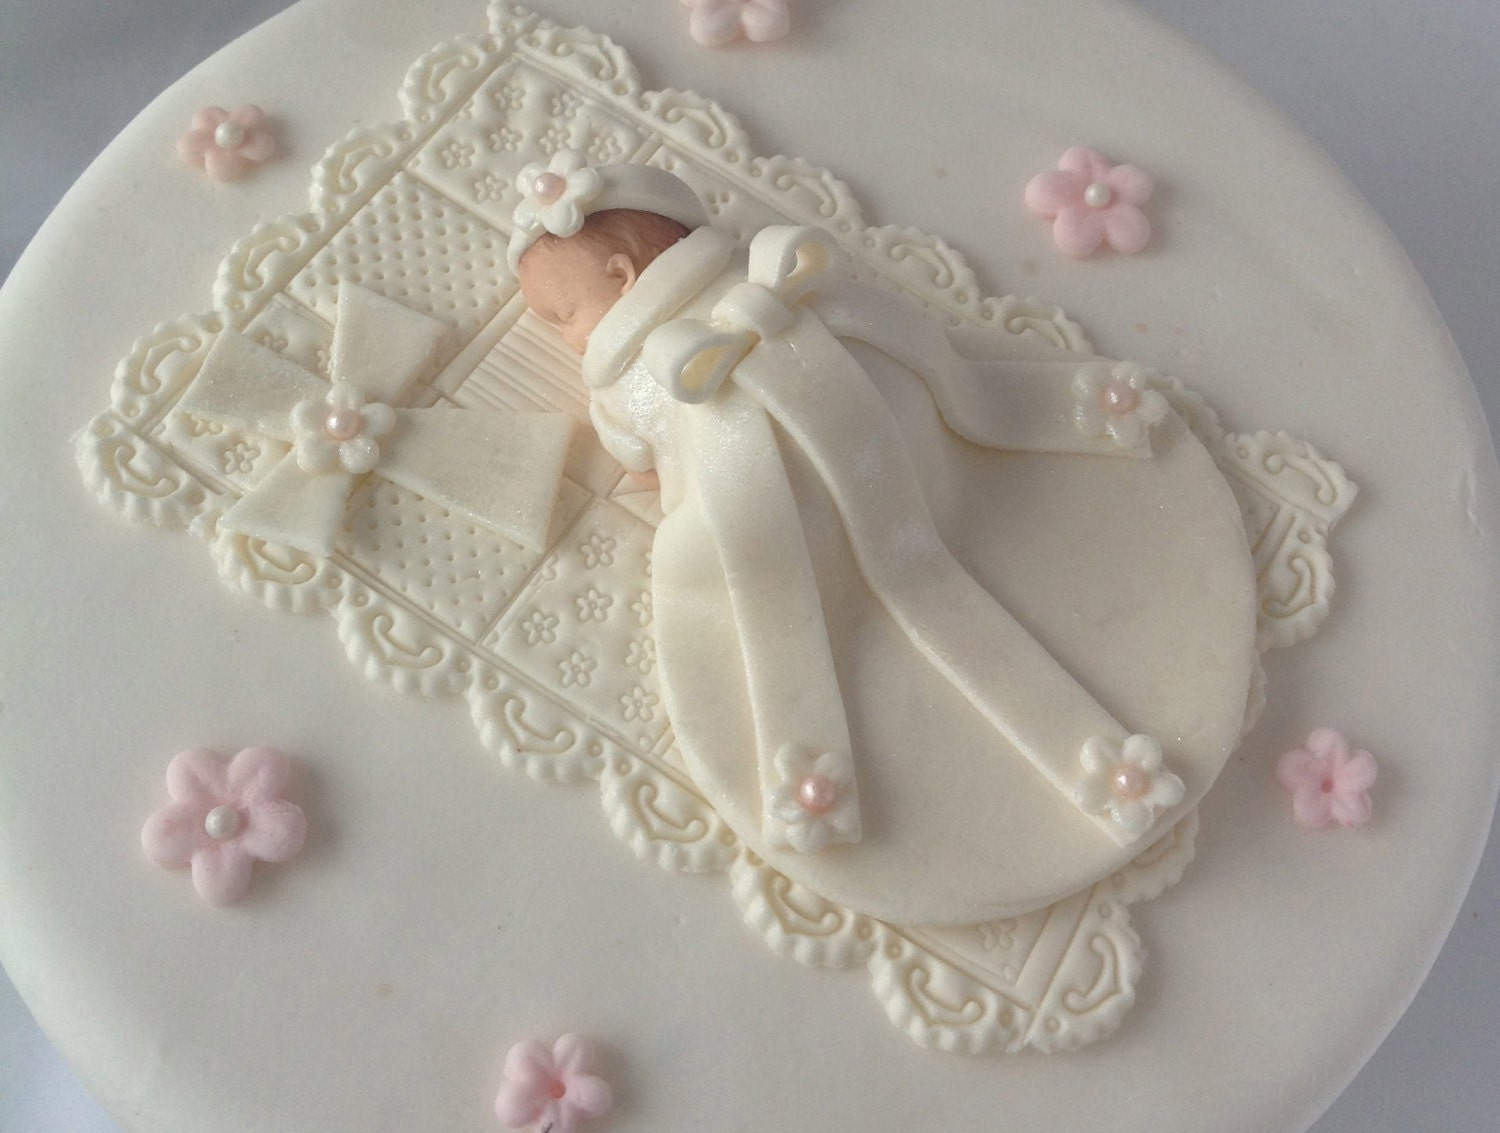 Christening Cake Design For Baby Girl : CHRISTENING CAKE TOPPER Baby Girl First birthday by ...